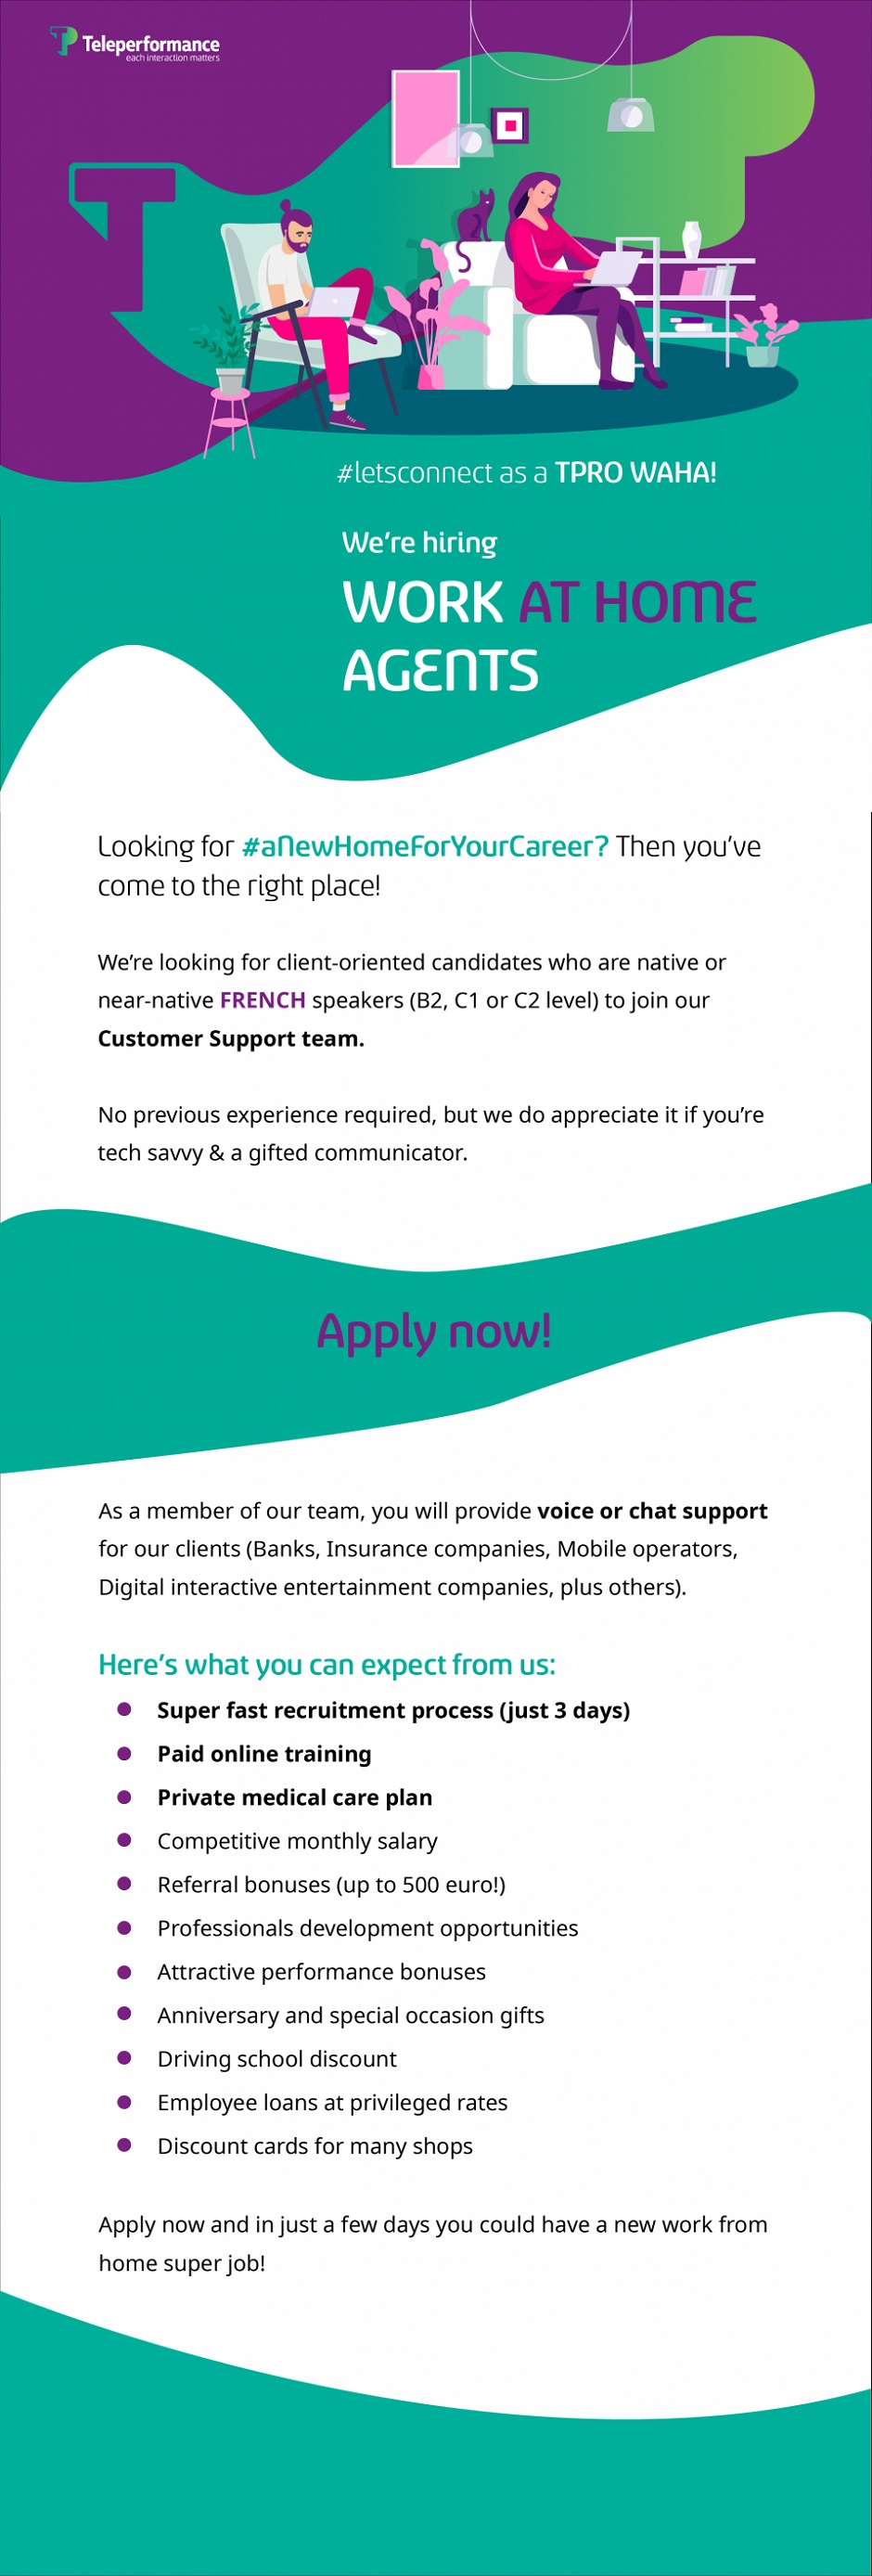 #letsconnect as a TPRO WAHA!  We're hiring Work AT HOME Agents Looking for #aNewHomeForYourCareer? Then you've come to the right place! We're looking for client-oriented candidates who are native or near-native FRENCH speakers (B2, C1 or C2 level) to join our Customer Support team.  No previous experience required, but we do appreciate it if you're tech savvy & a gifted communicator. Apply now!  As a member of our team, you will provide voice or chat support for our clients (Banks, Insurance companies, Mobile operators, Digital interactive entertainment companies, plus others). Here's what you can expect from us: ➔ Super-fast recruitment process (just 3 days) ➔ Competitive monthly salary ➔ Attractive performance bonuses ➔ Paid online training ➔ Referral bonuses (up to 500 euro!) ➔ Professionals development opportunities ➔ Private medical insurance ➔ Anniversary and special occasion gifts ➔ Driving school discount ➔ Employee loans at privileged rates ➔ Discount cards for many shops Apply now and in just a few days you could have a new work from home super job!